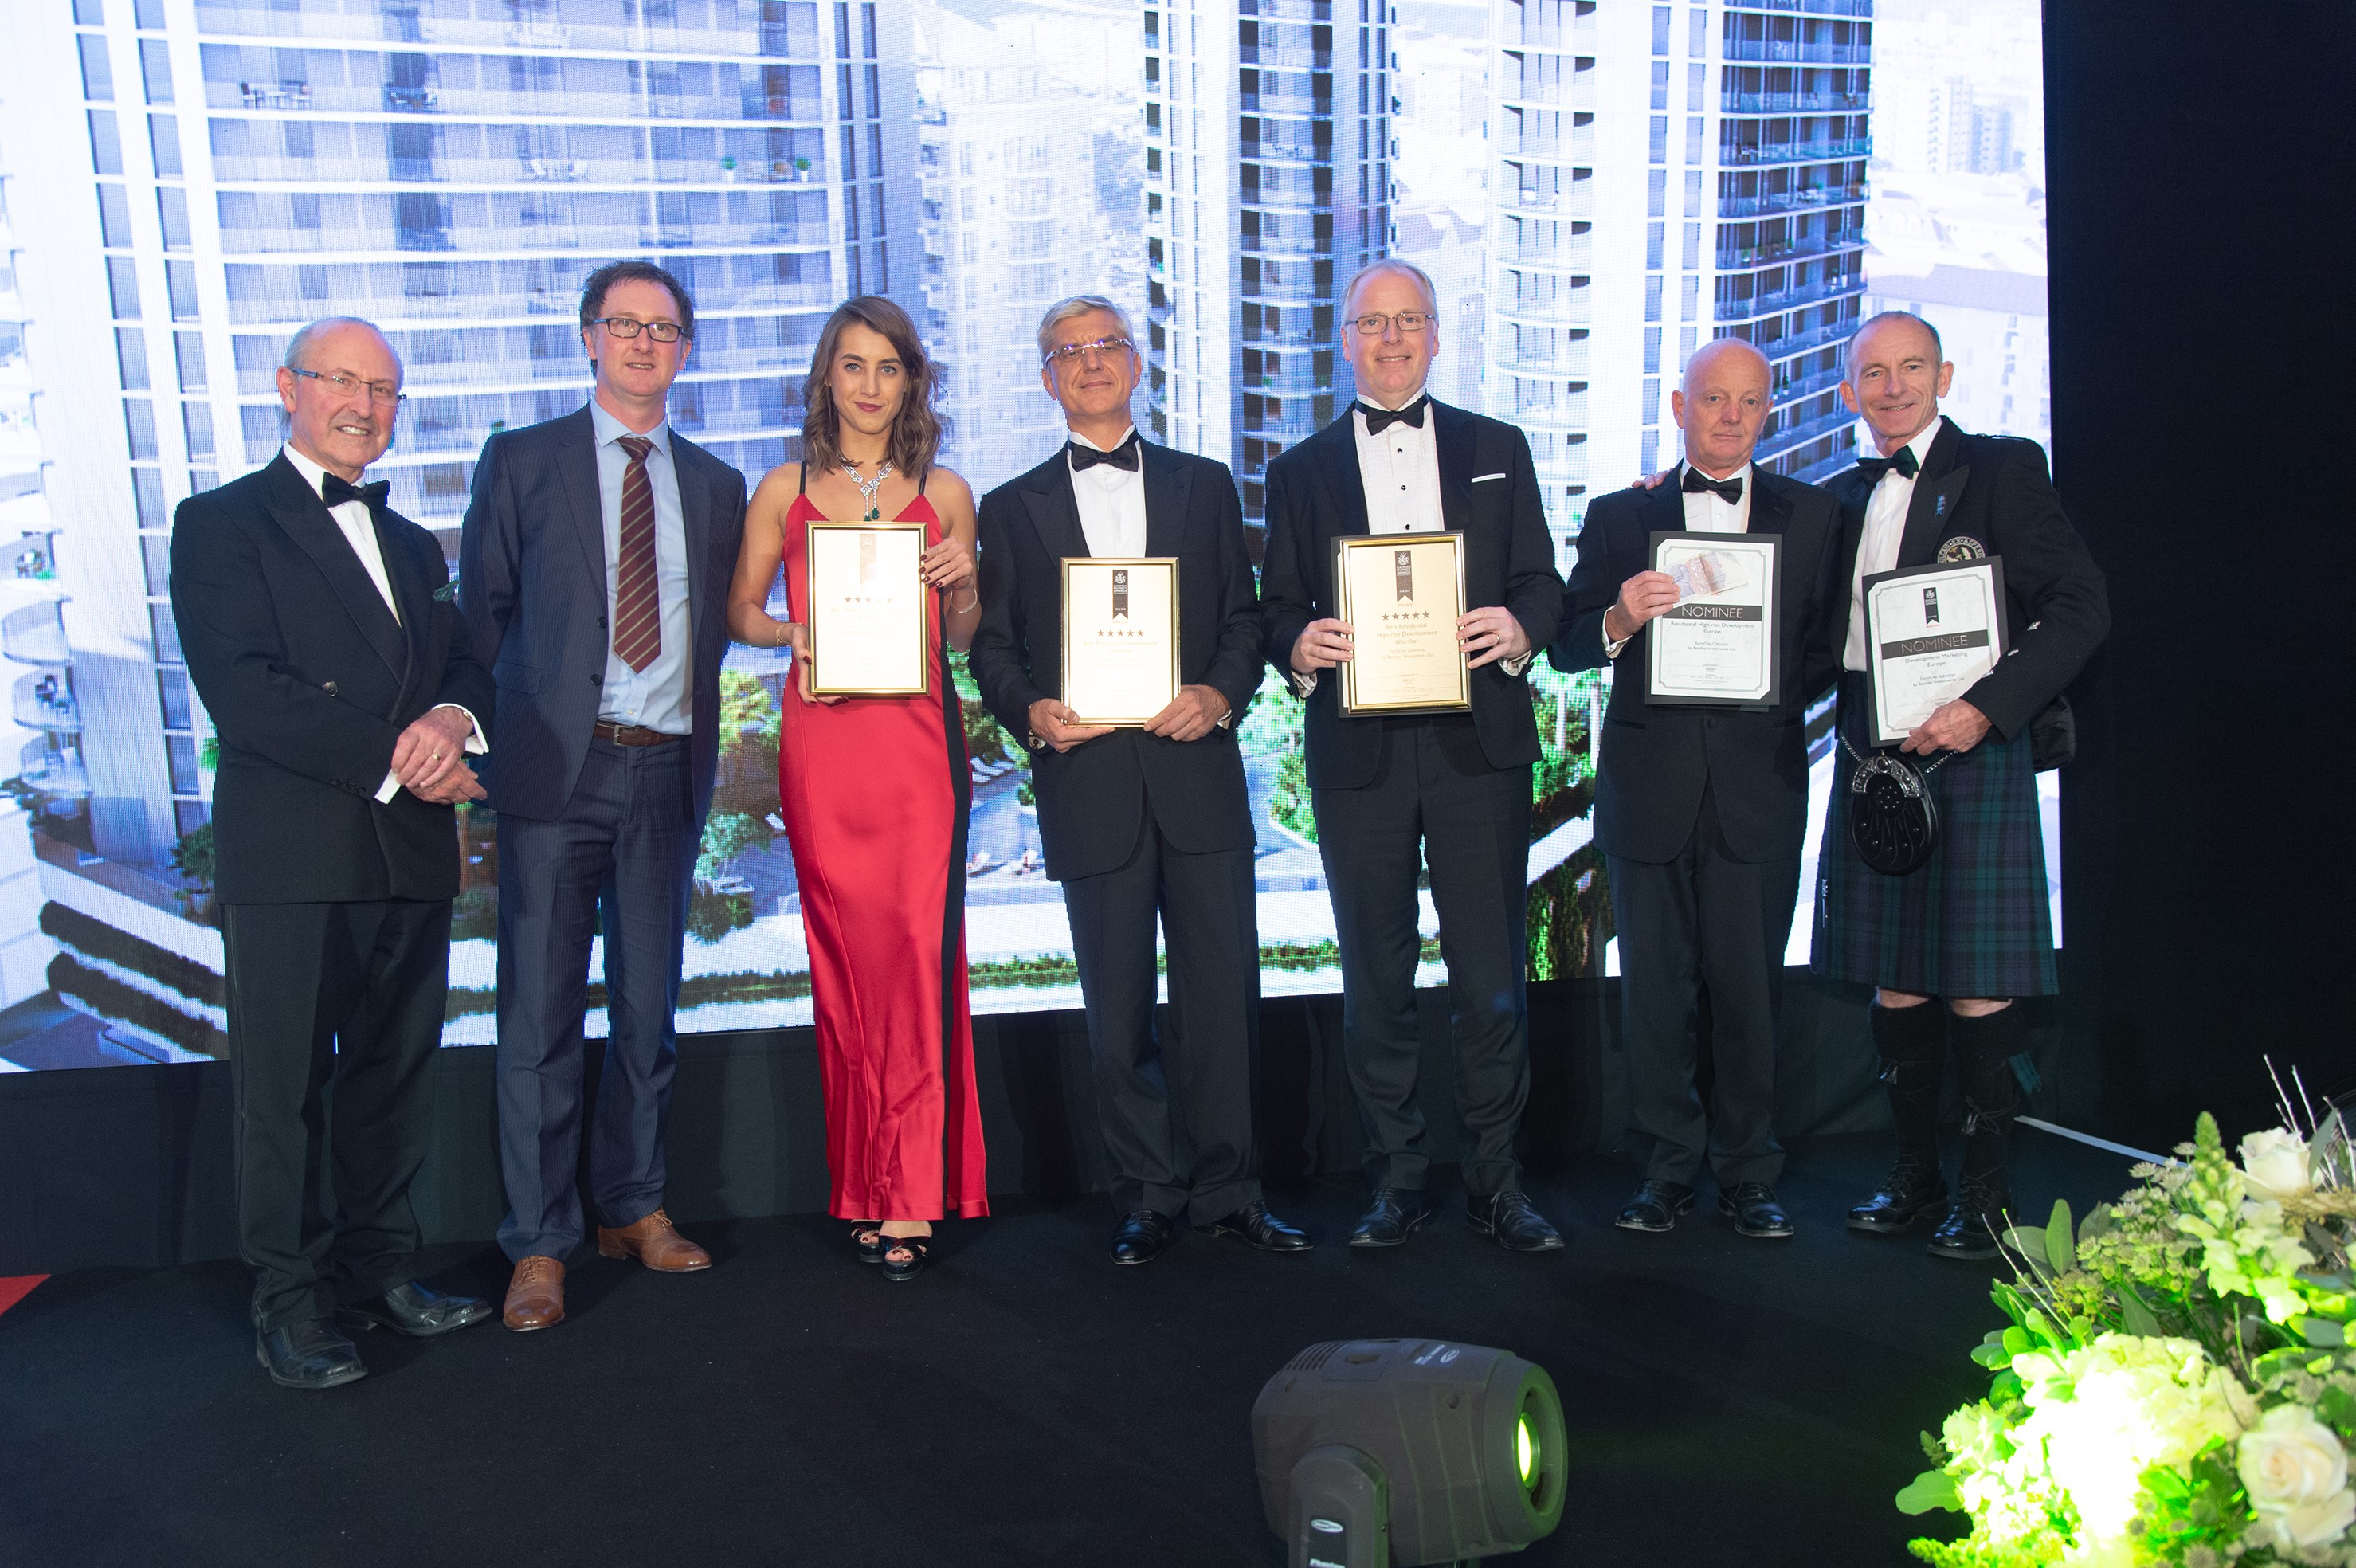 EuroCity scoops six honours at the European Property Awards Image